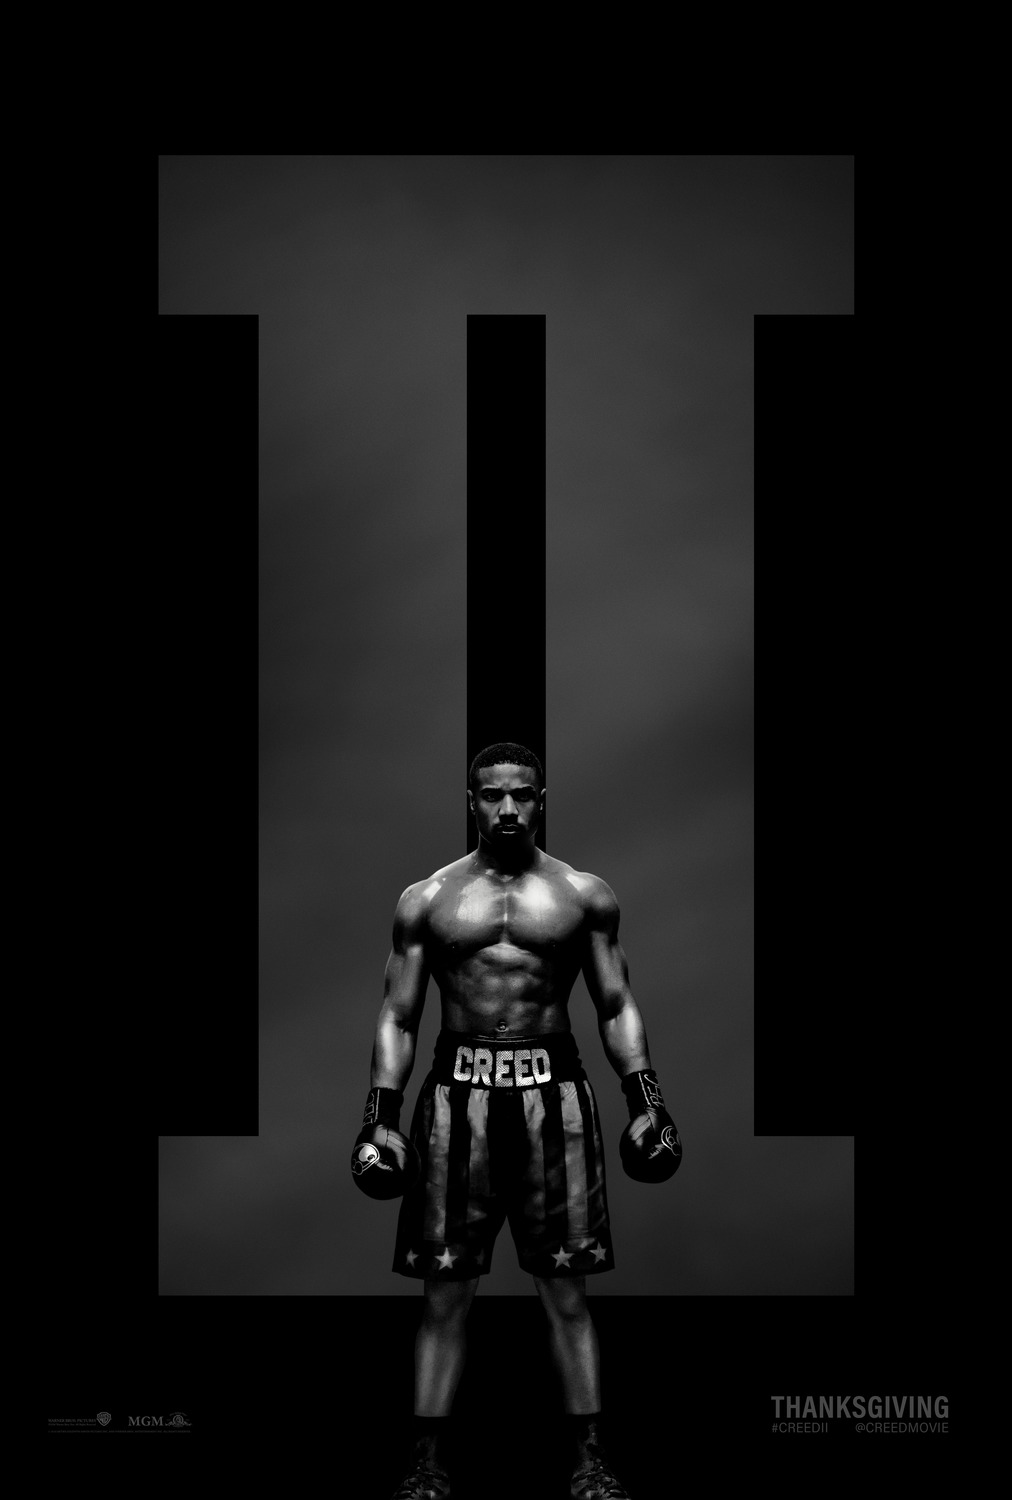 Creed II teaser poster